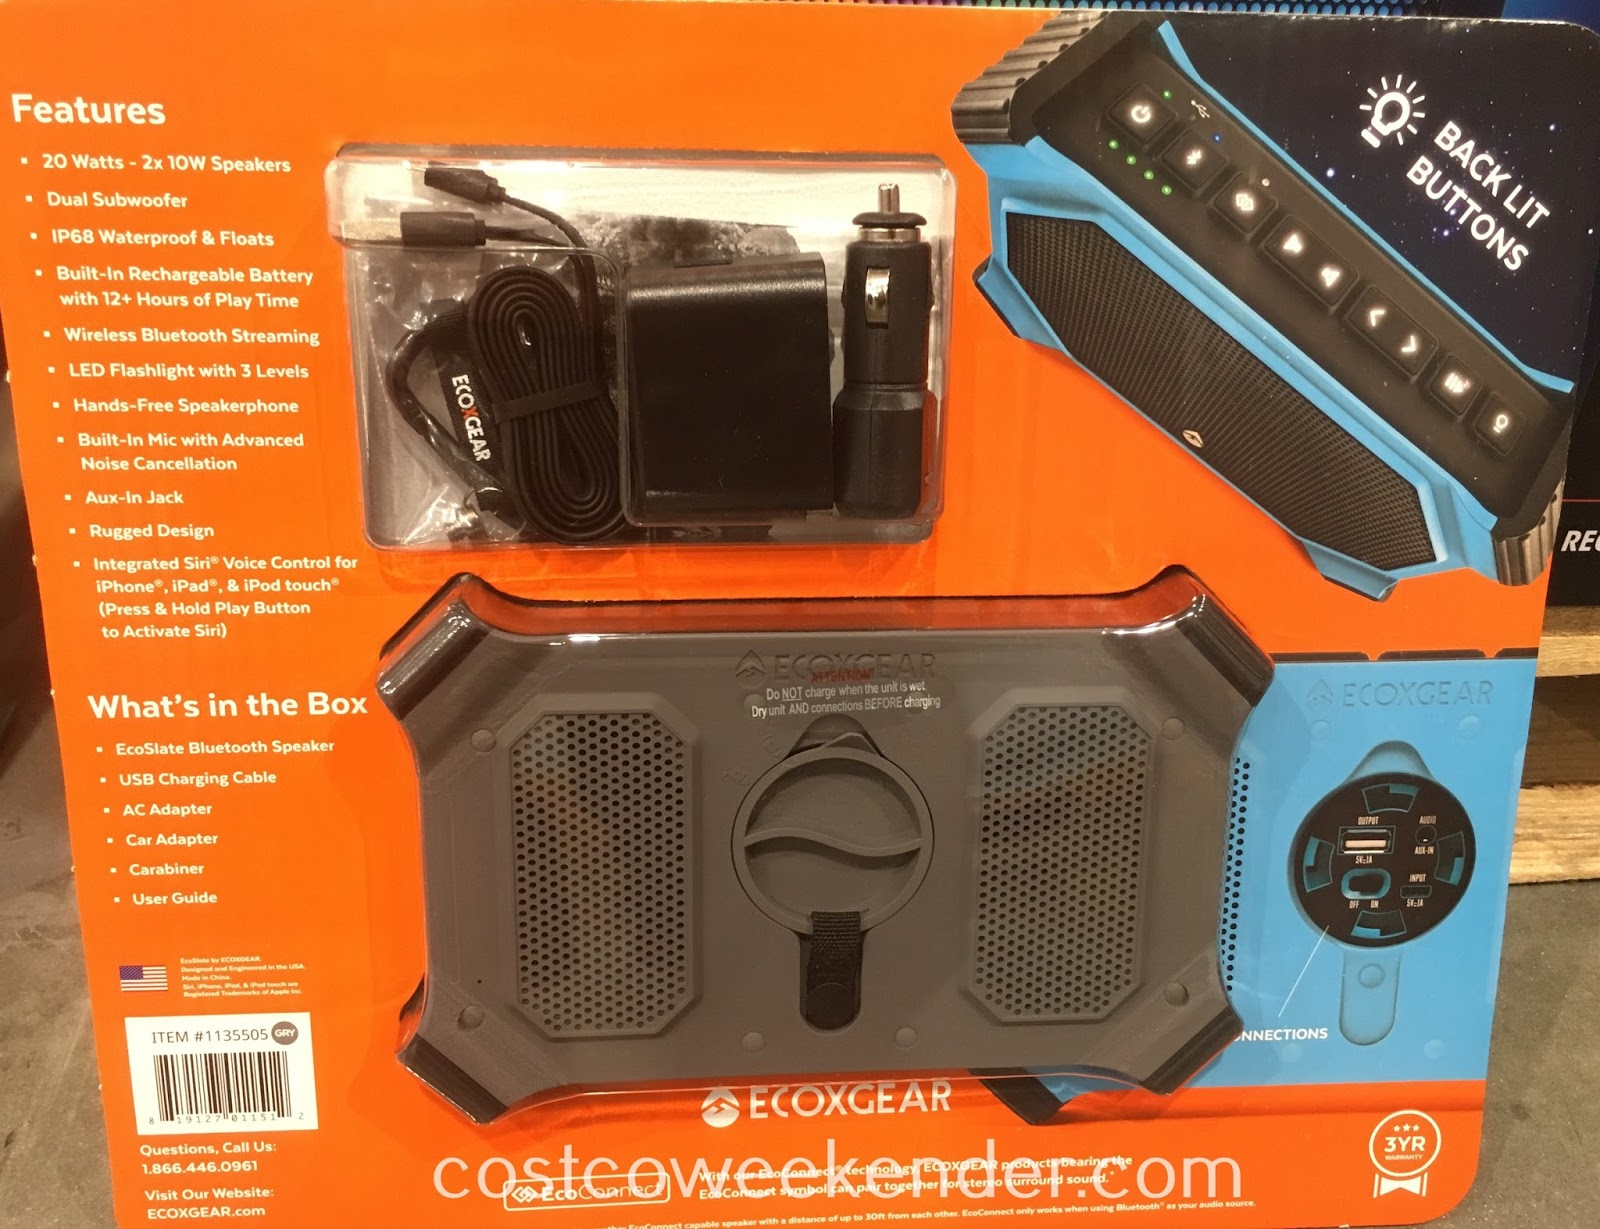 Costco 1135505 - ECOXGEAR EcoSlate Bluetooth Speaker: great for your active lifestyle